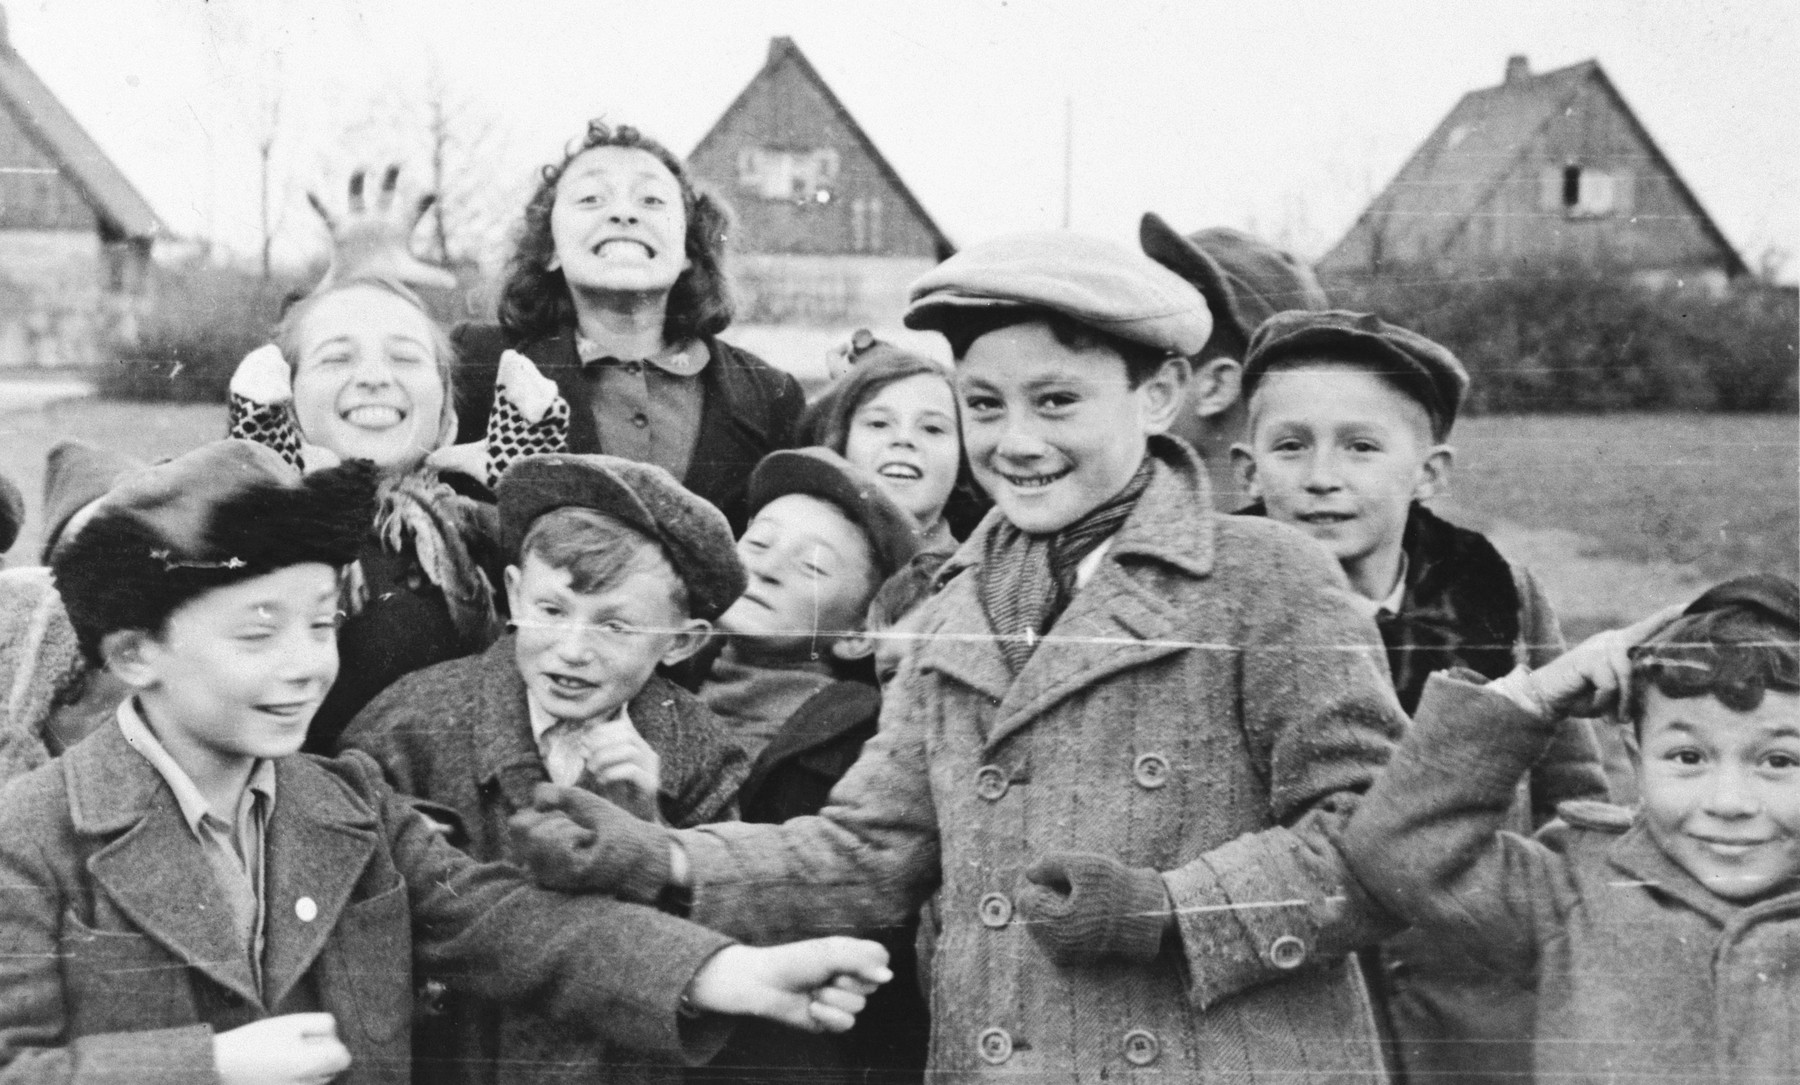 A large group of children stands in humorous poses for a photograph in the Neu Freimann displaced person's camp.  Lova Warszawczyk poses in the foreground.